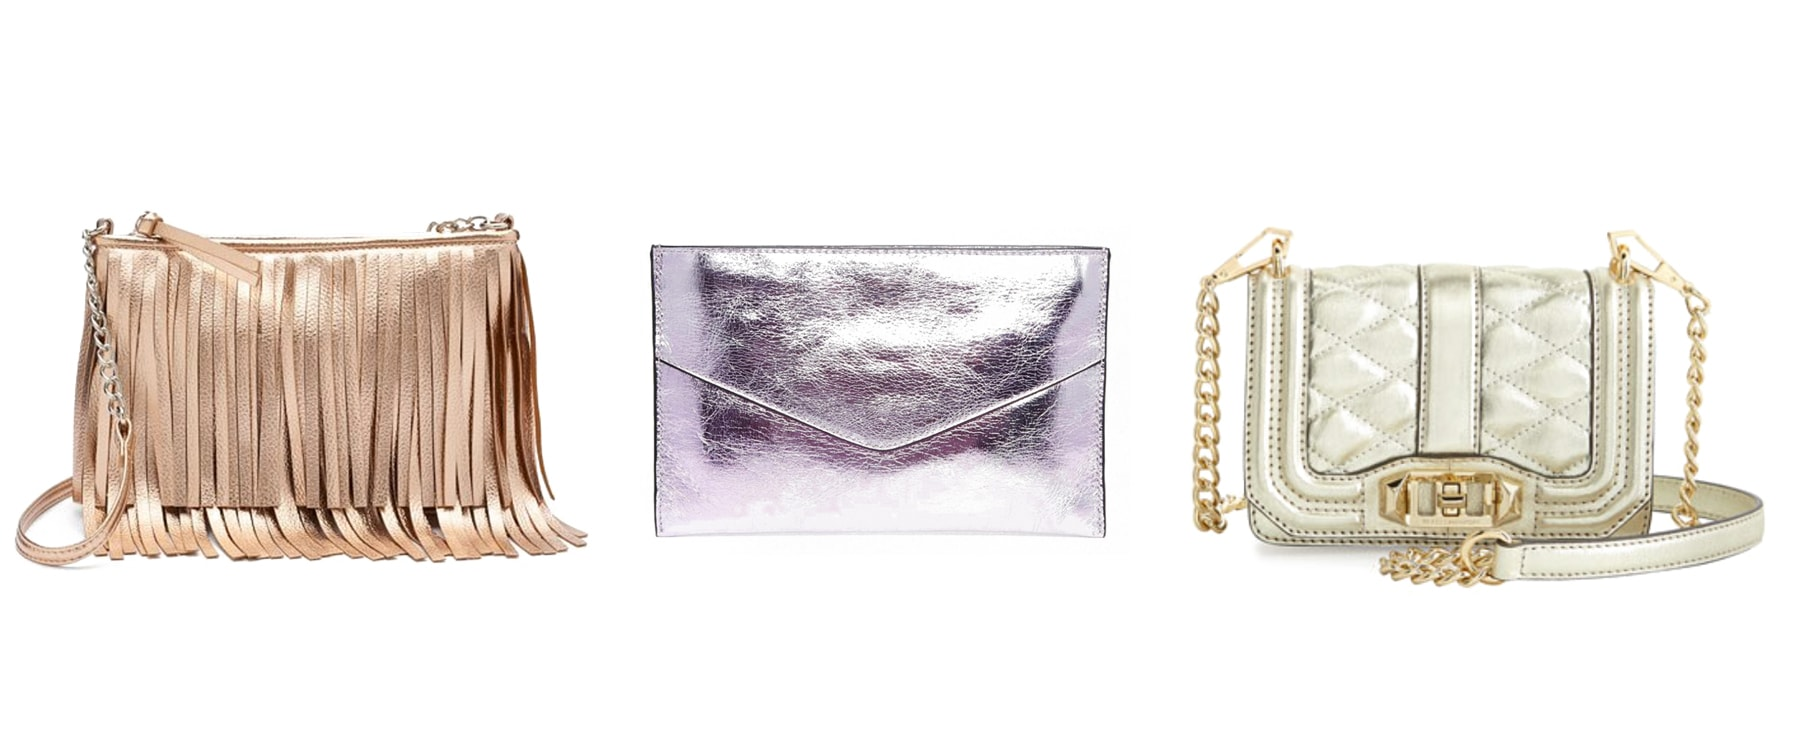 metallic bags purses clutches crossbody